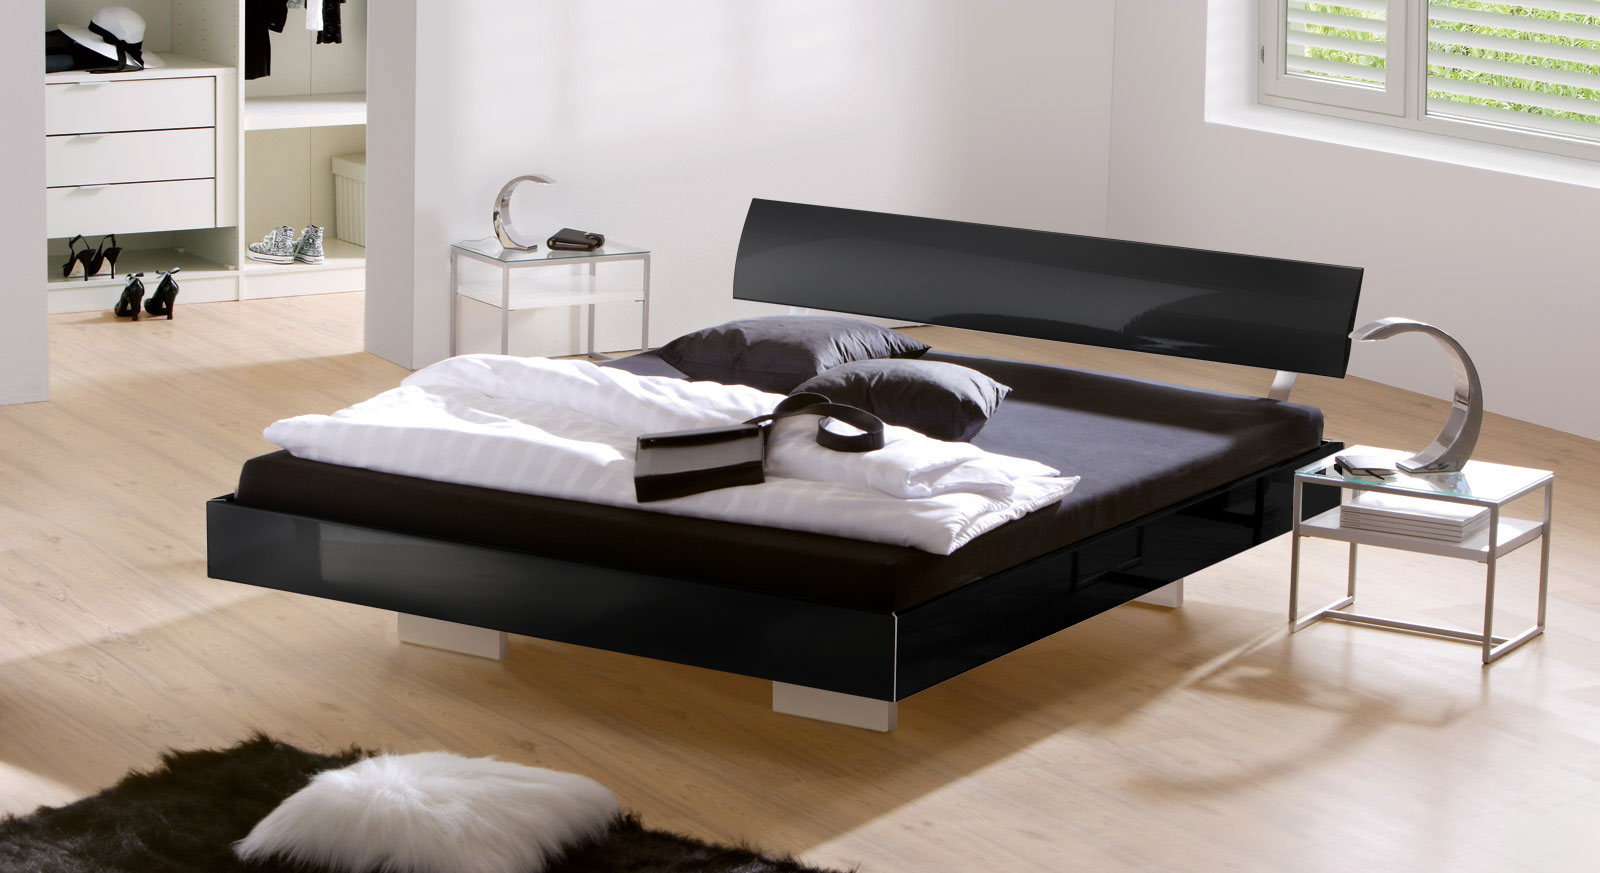 edles hochglanz schwebebett in schwarz z b 140x200 cm timeless. Black Bedroom Furniture Sets. Home Design Ideas